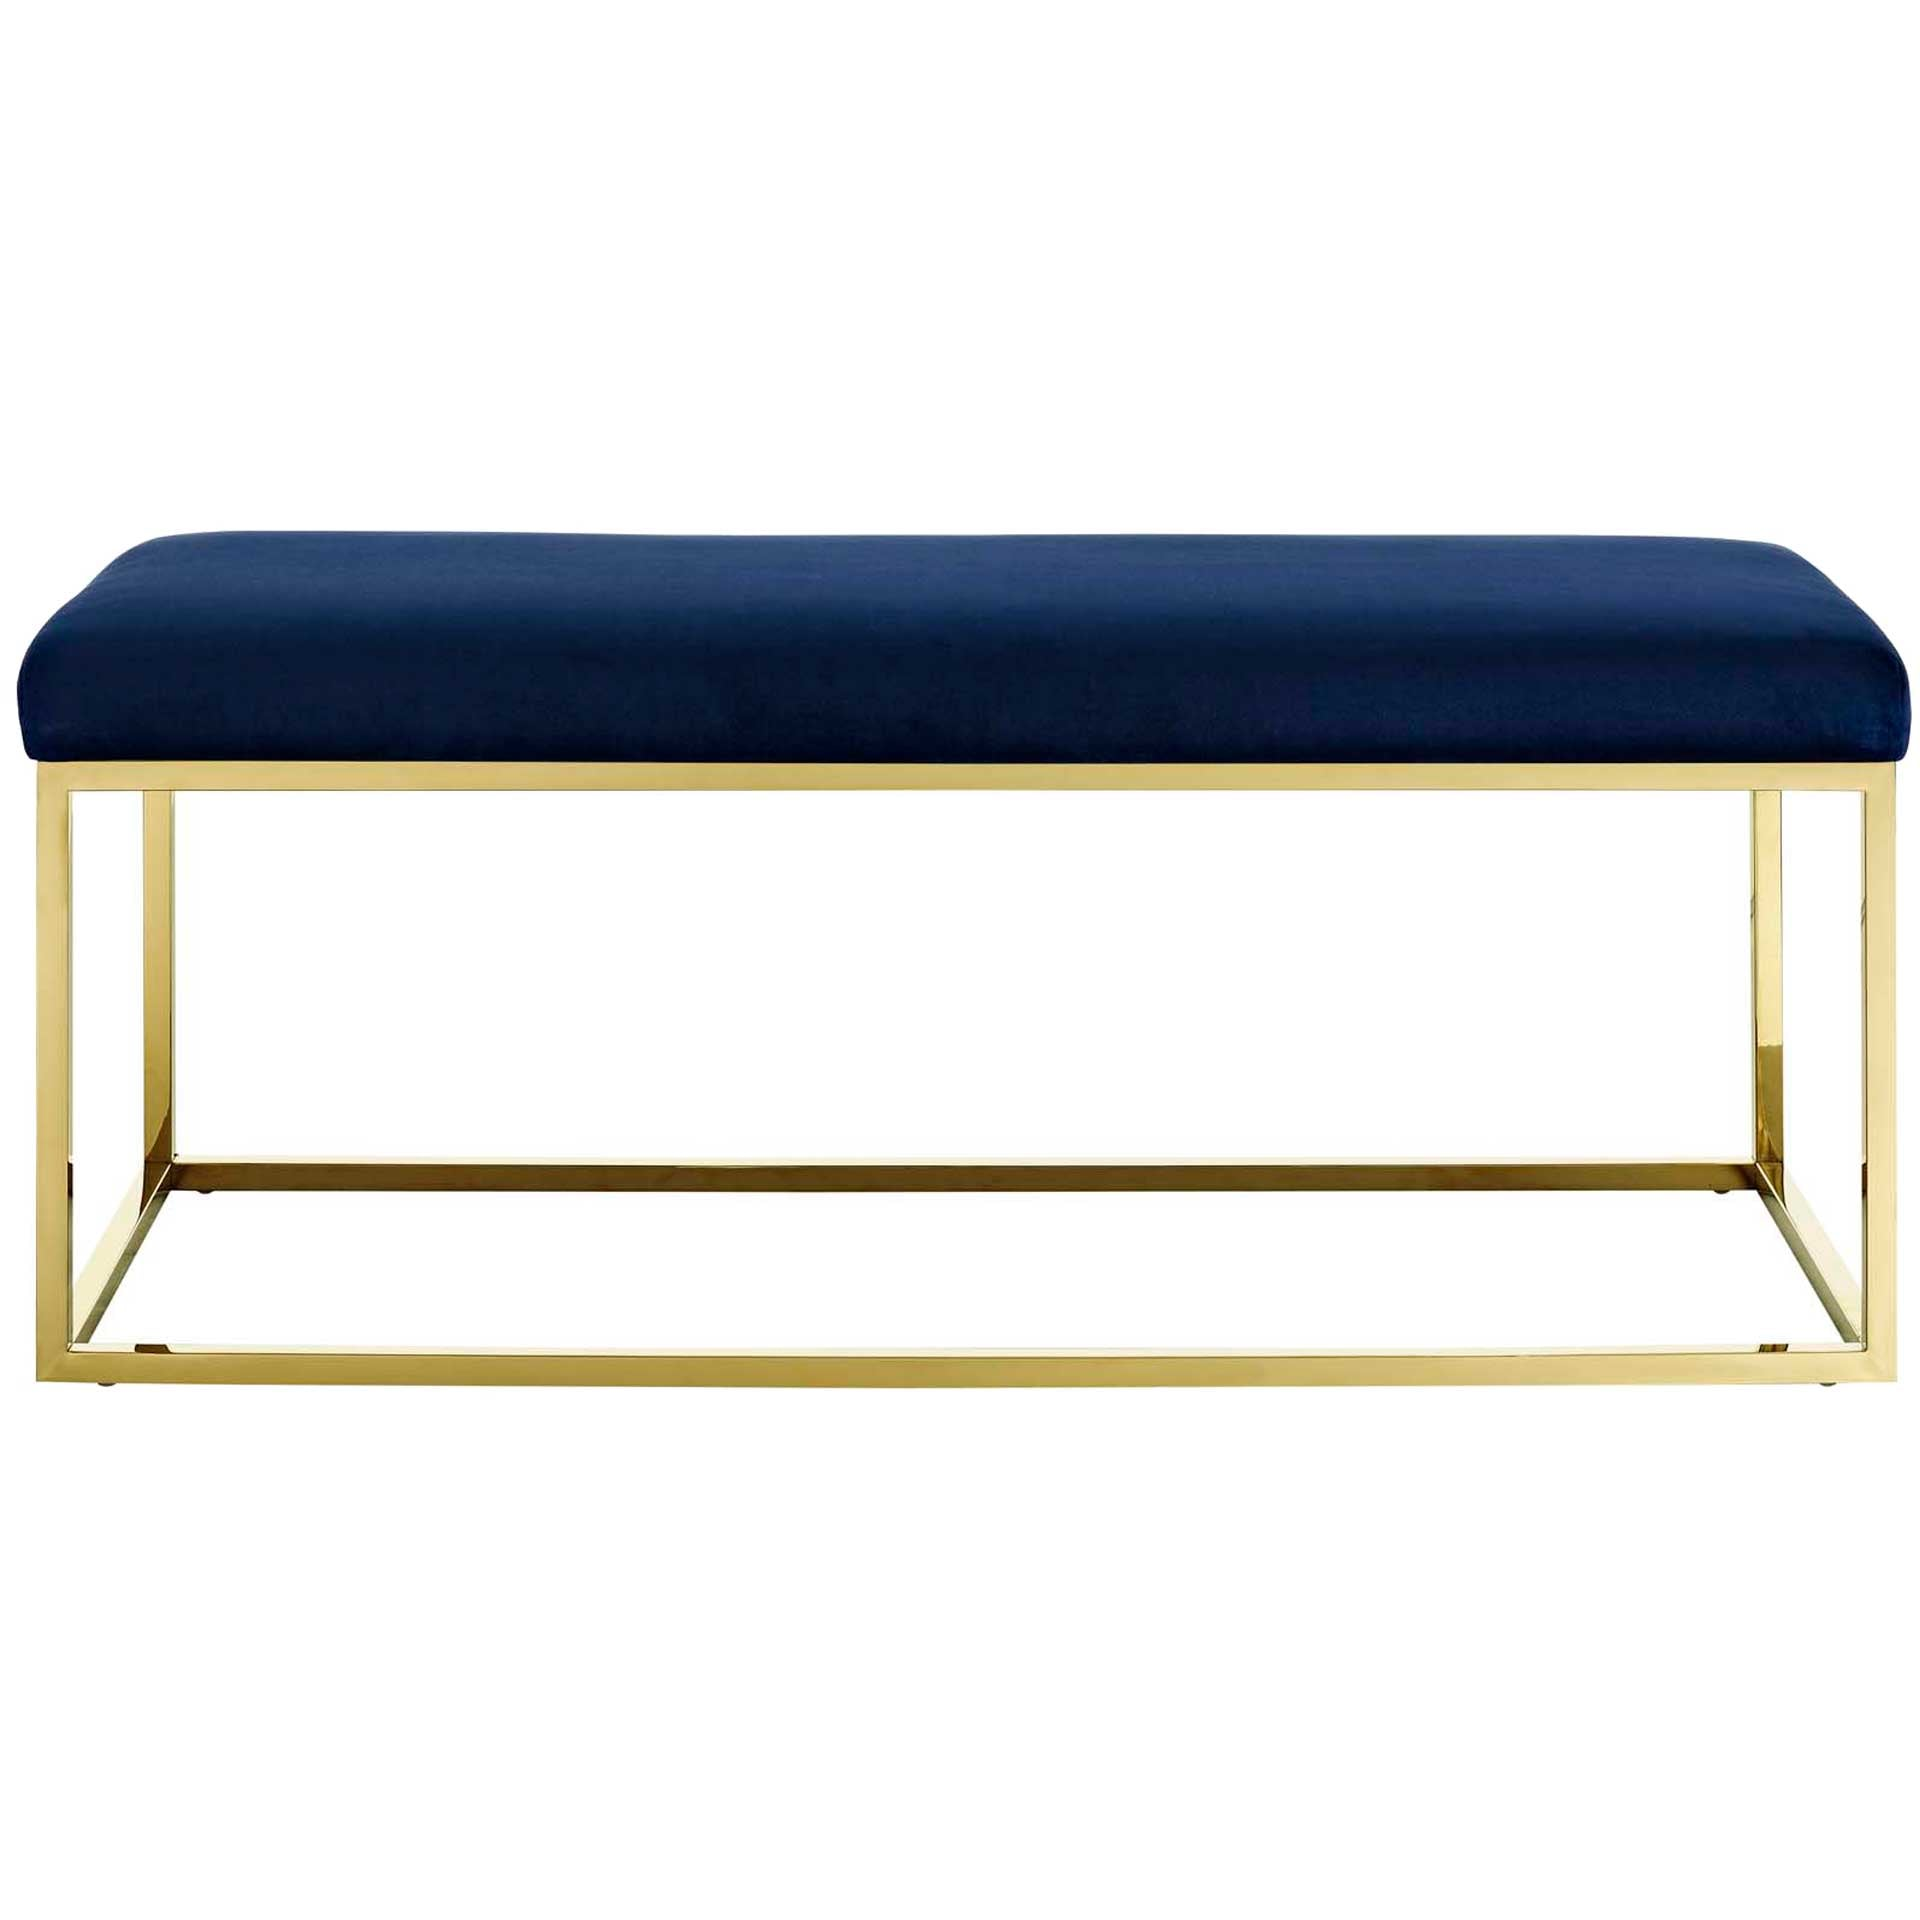 Alden Fabric Bench Gold/Navy